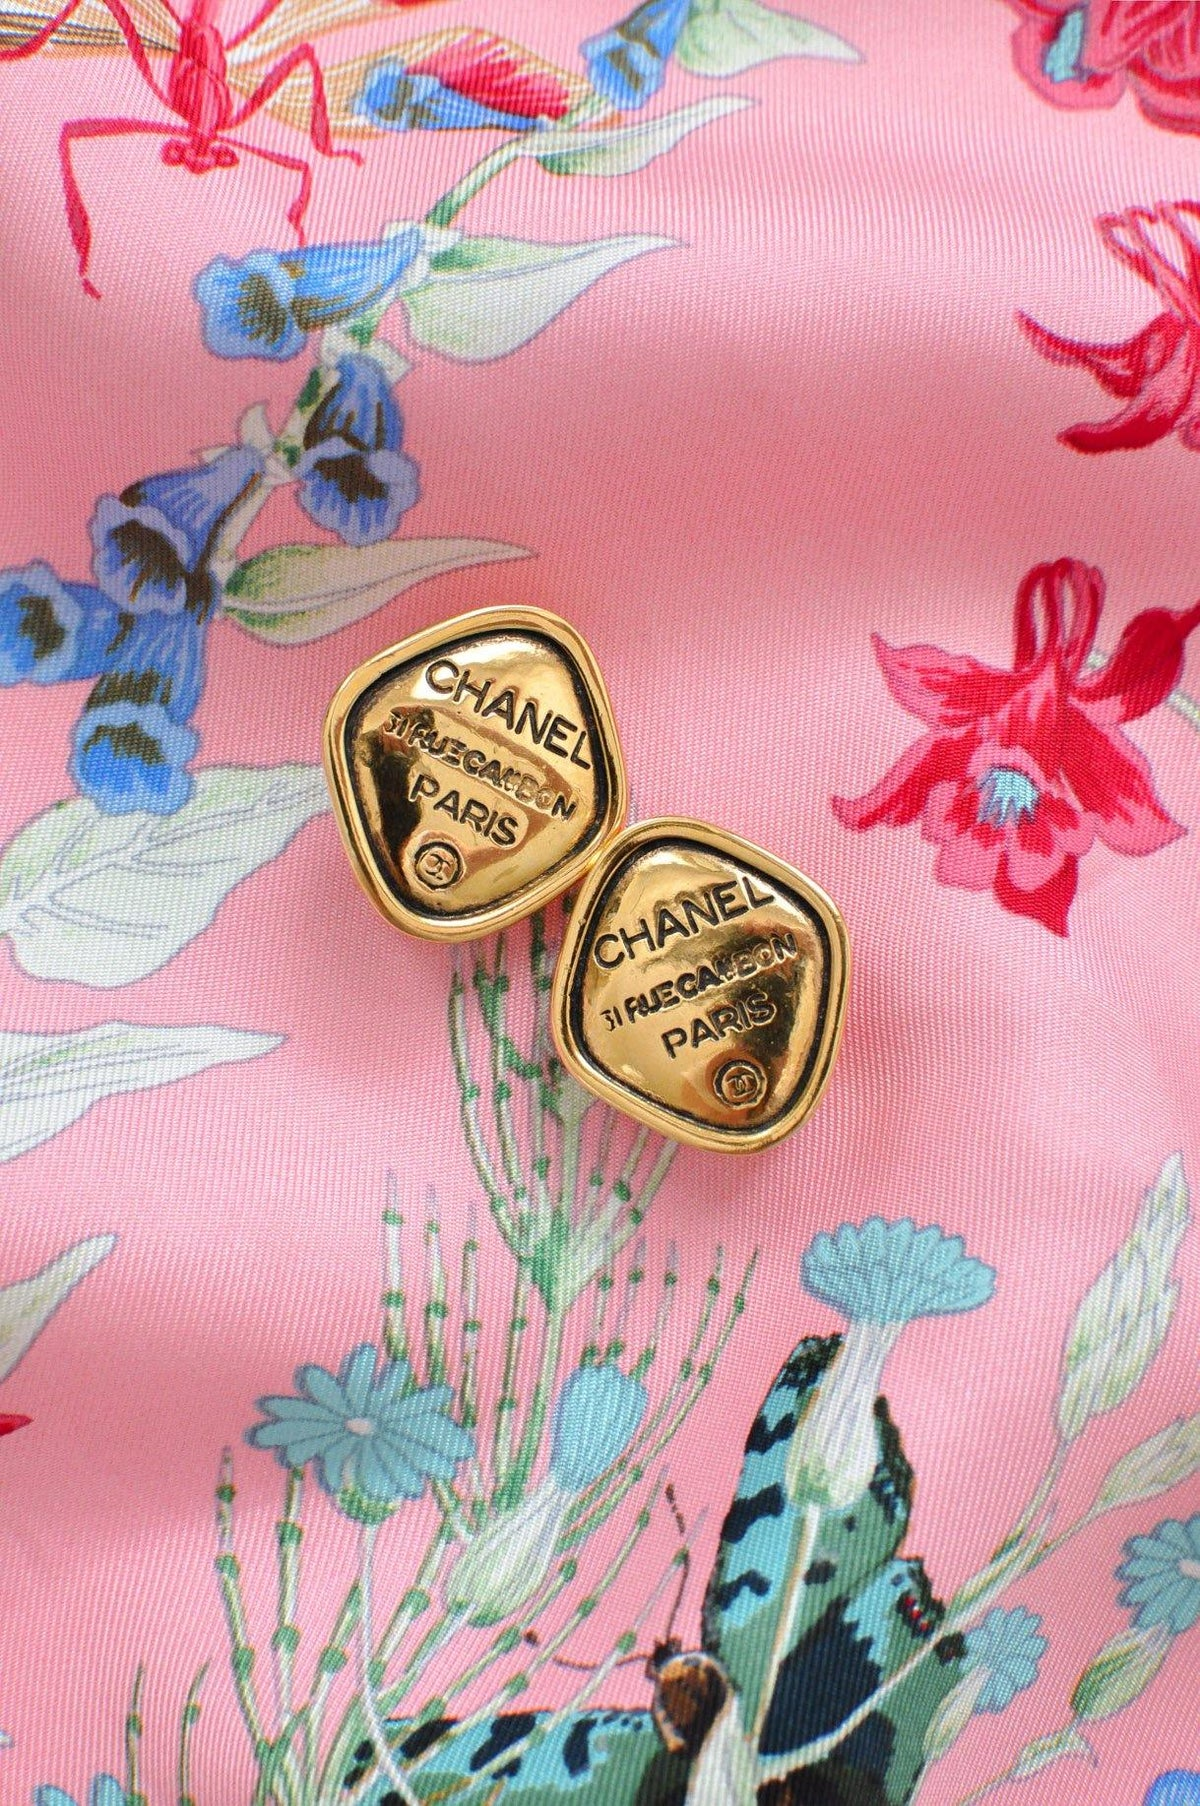 Chanel 31 Rue Cambon Clip-on Earrings - Sweet & Spark